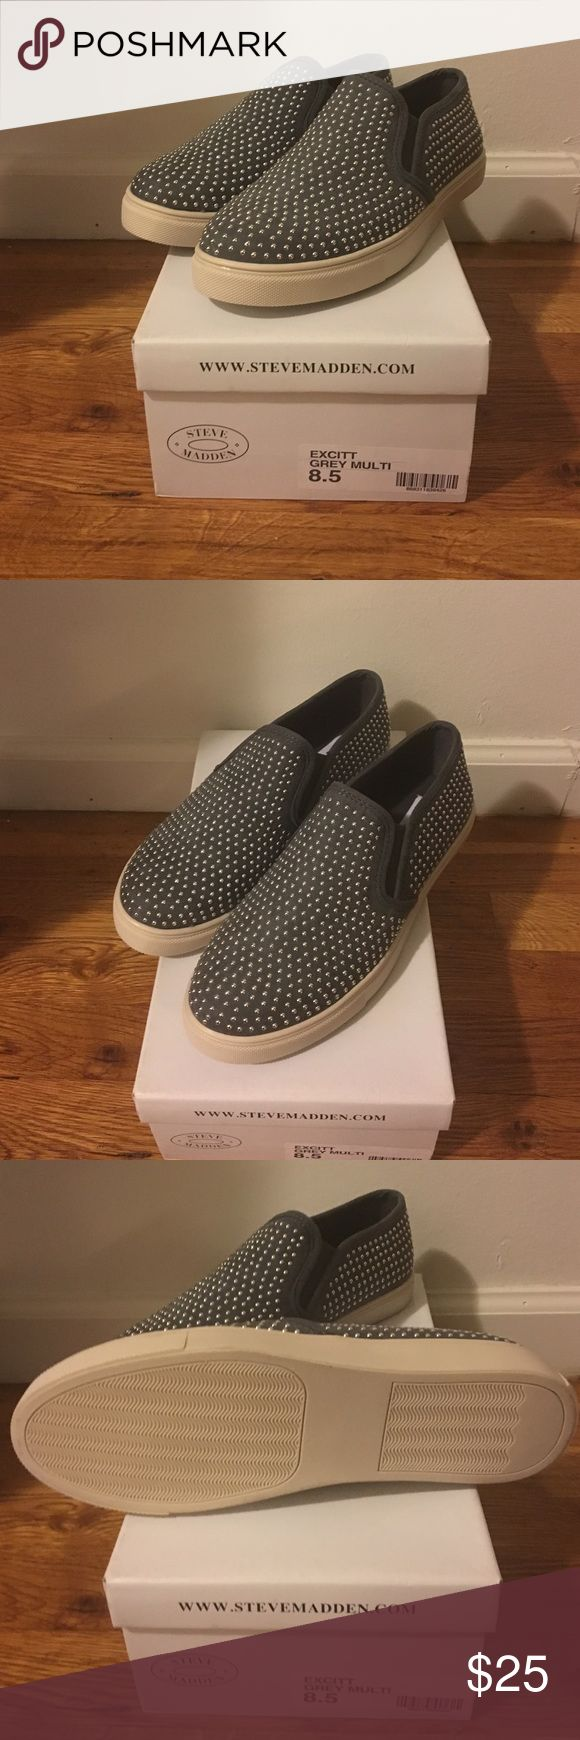 Brand New! Steve Madden Gray Studded Sneakers Gray Studded slip on sneakers. Never worn Steve Madden Shoes Sneakers